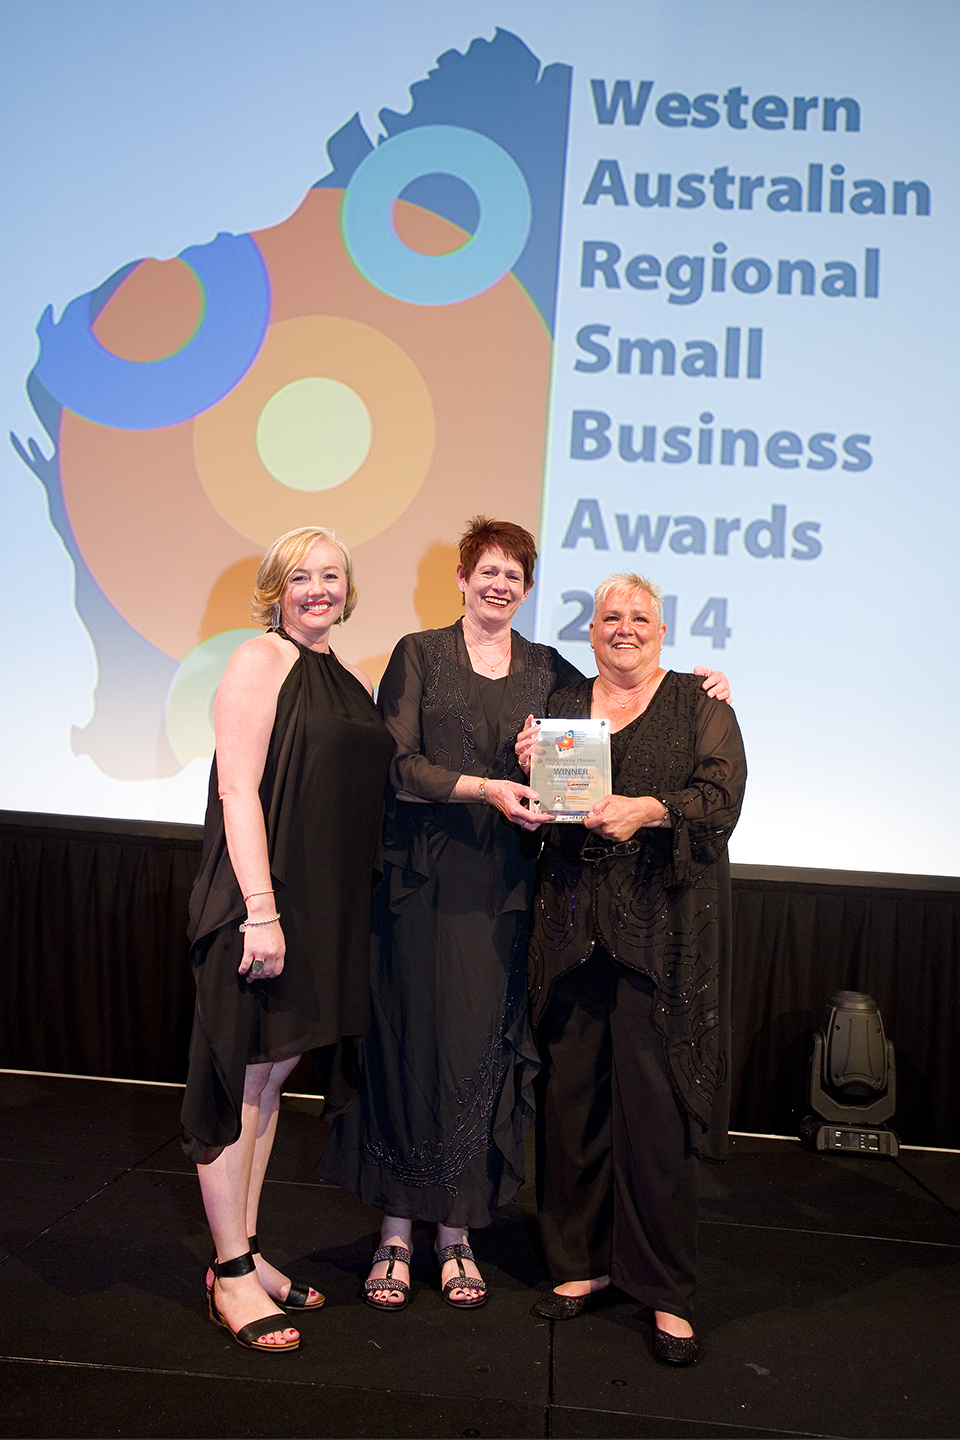 Top photo: Bronte Holmes, of Qantas, presents Maggie van Santen and Becki Shaver, of HideAway Haven, with their prestigious gong at the 2014 WA Regional Small Business of the Year Awards. Picture: Murray Armenti.